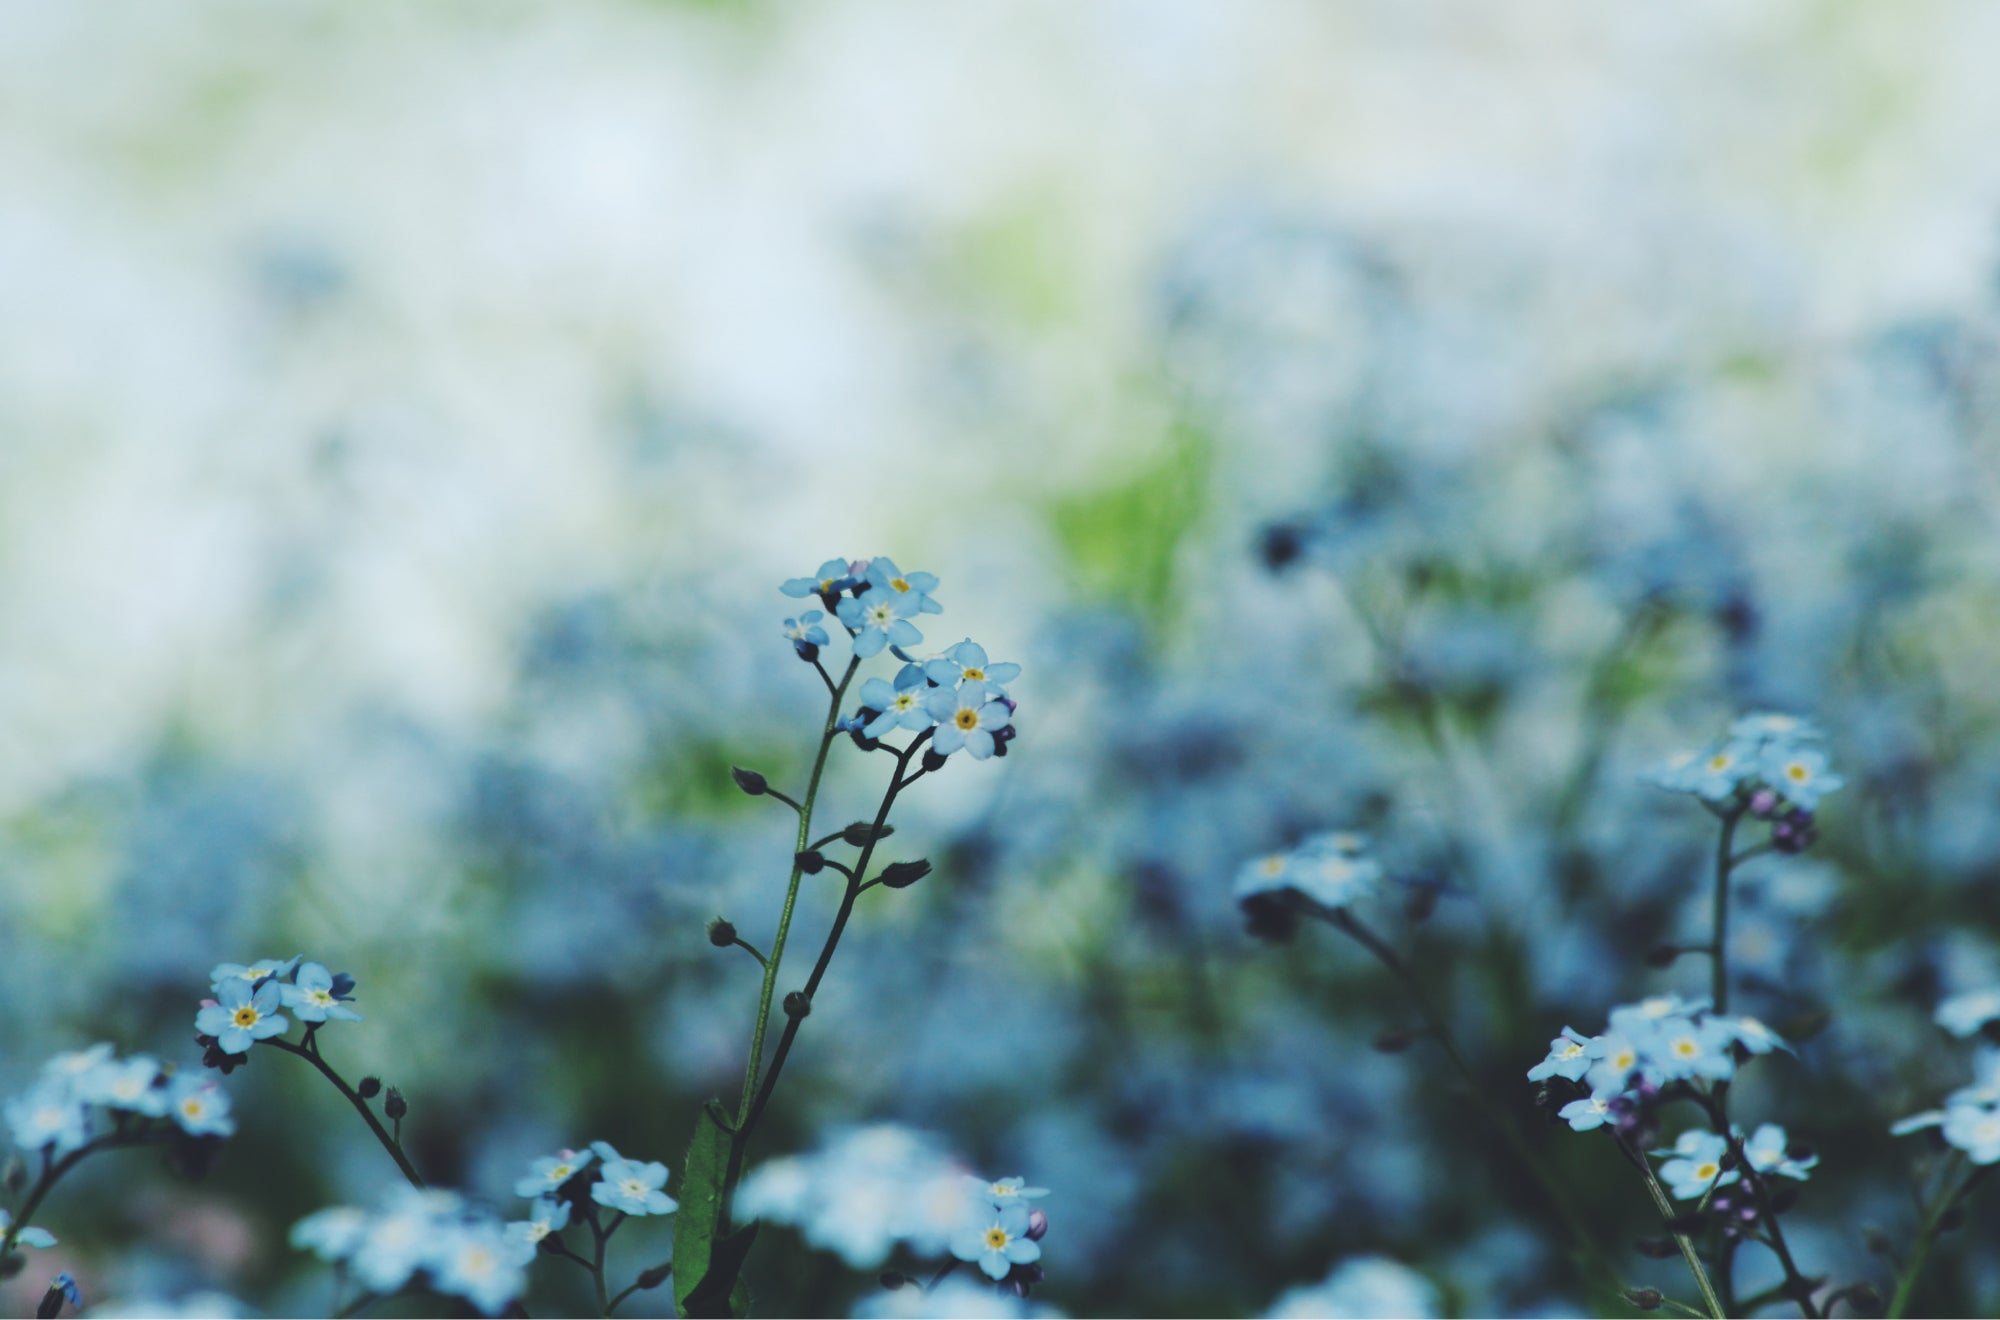 Send Forget-me-nots when celebrating the memories you've cherished with a loved one | Talsam